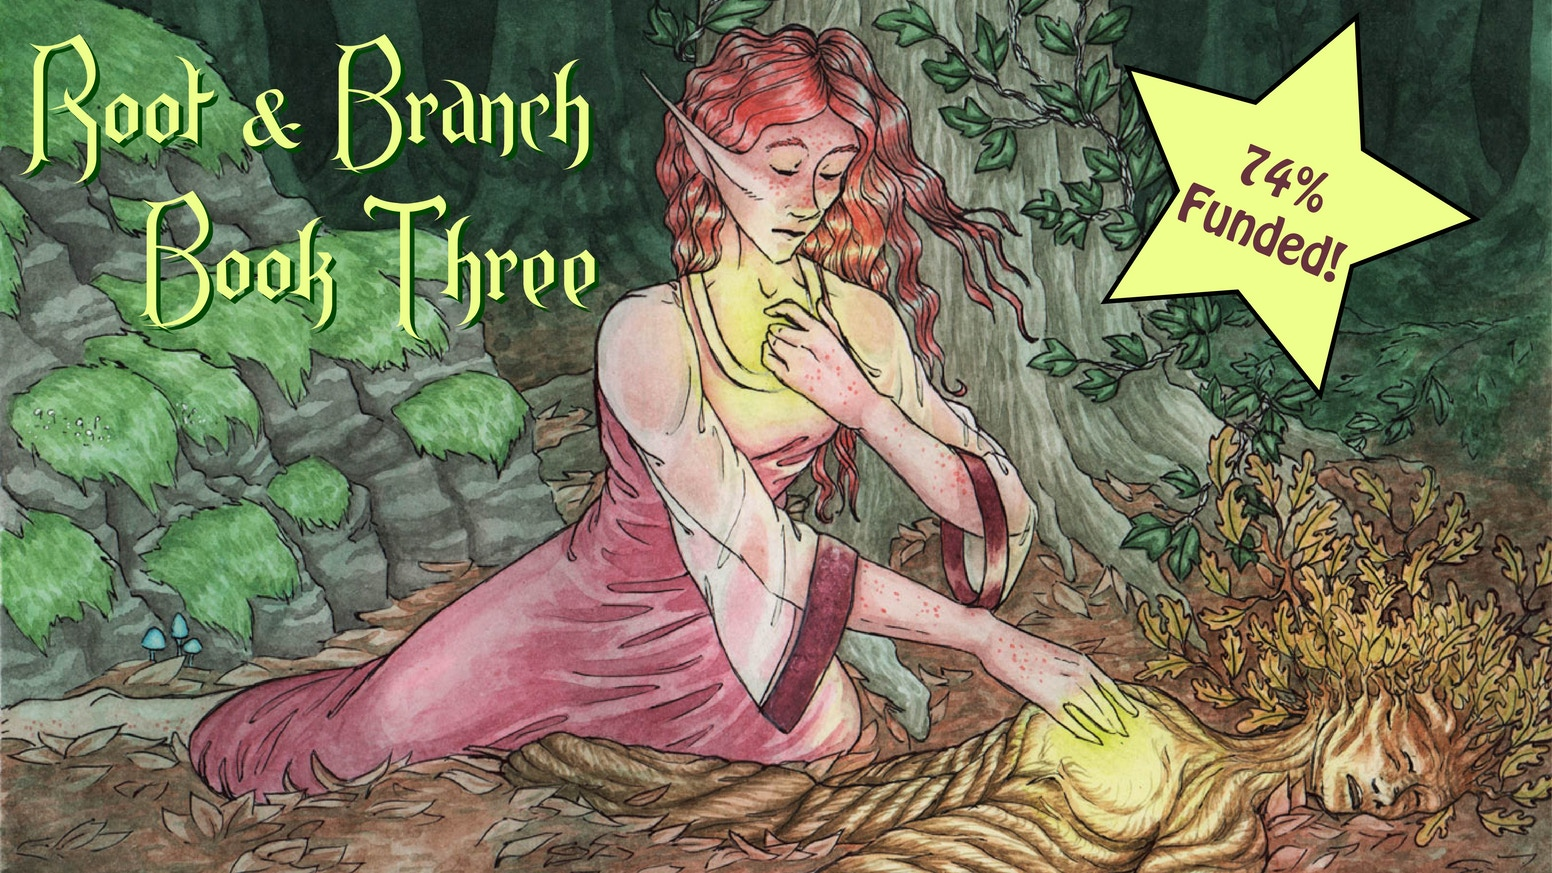 Printing Book Three of Root & Branch - An epic fantasy graphic novel. The latest collected volume of the story, in stunning full color!